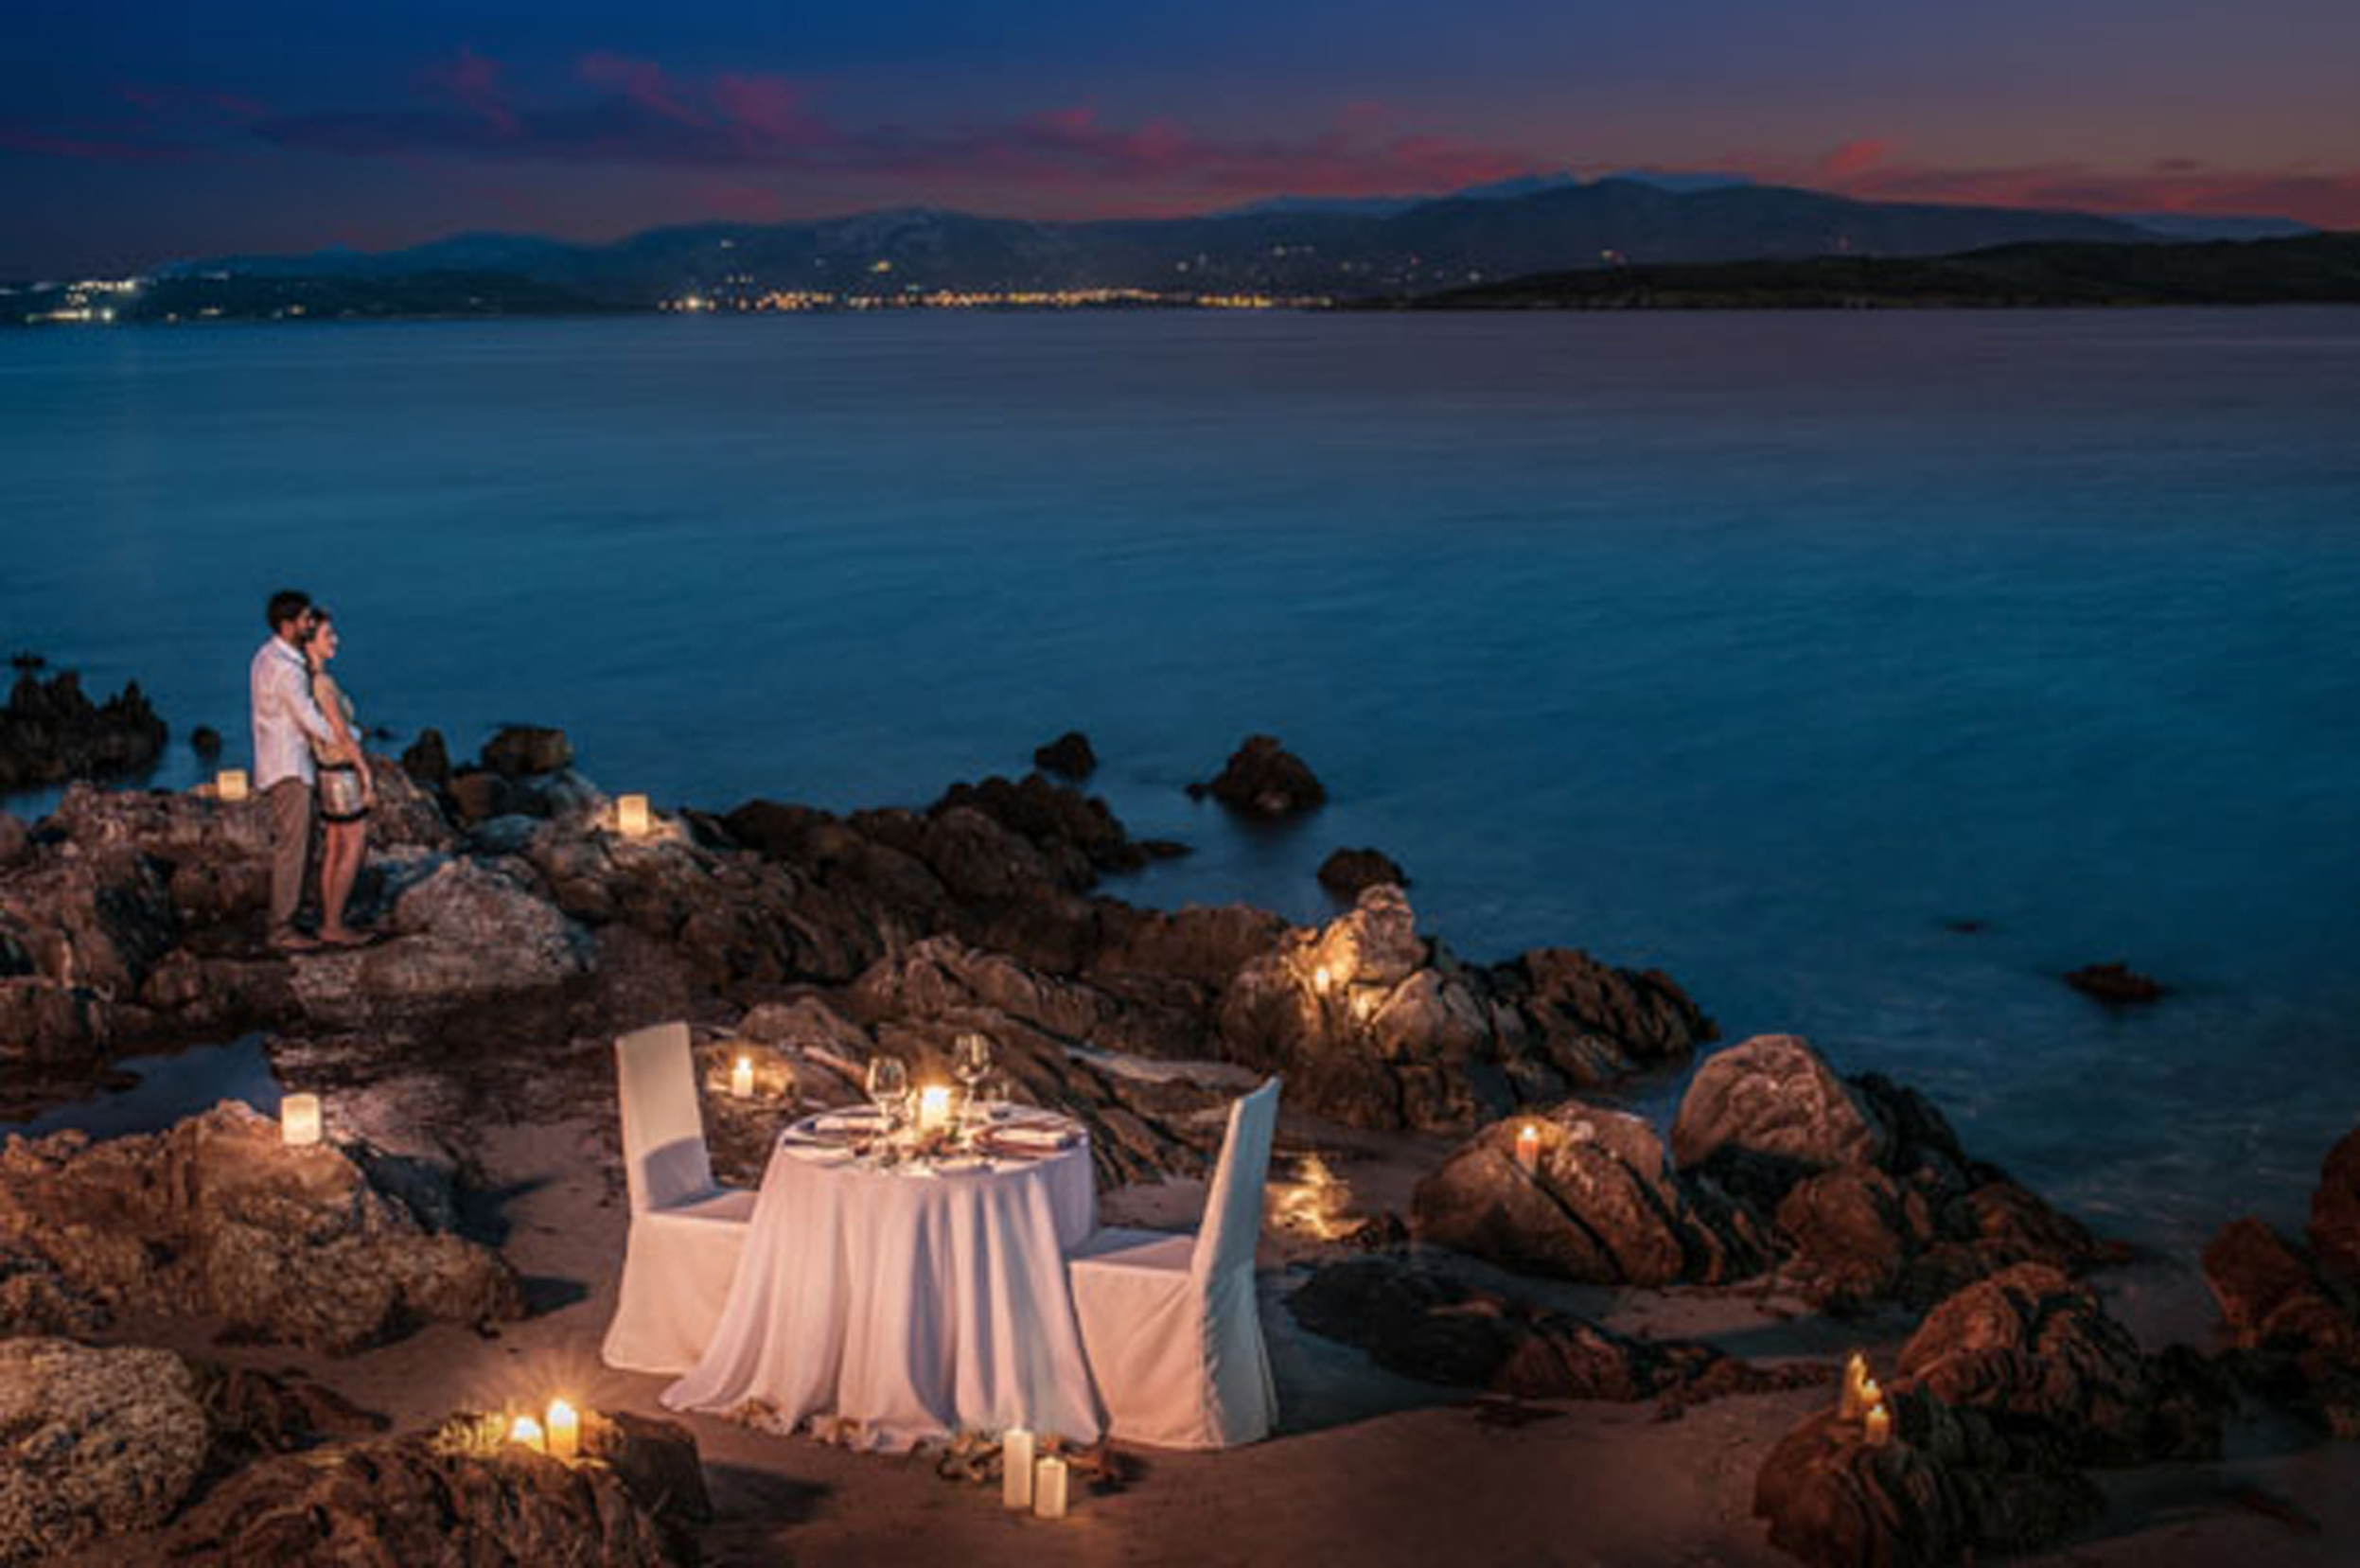 Wonderfulsardinia_com_Romantica